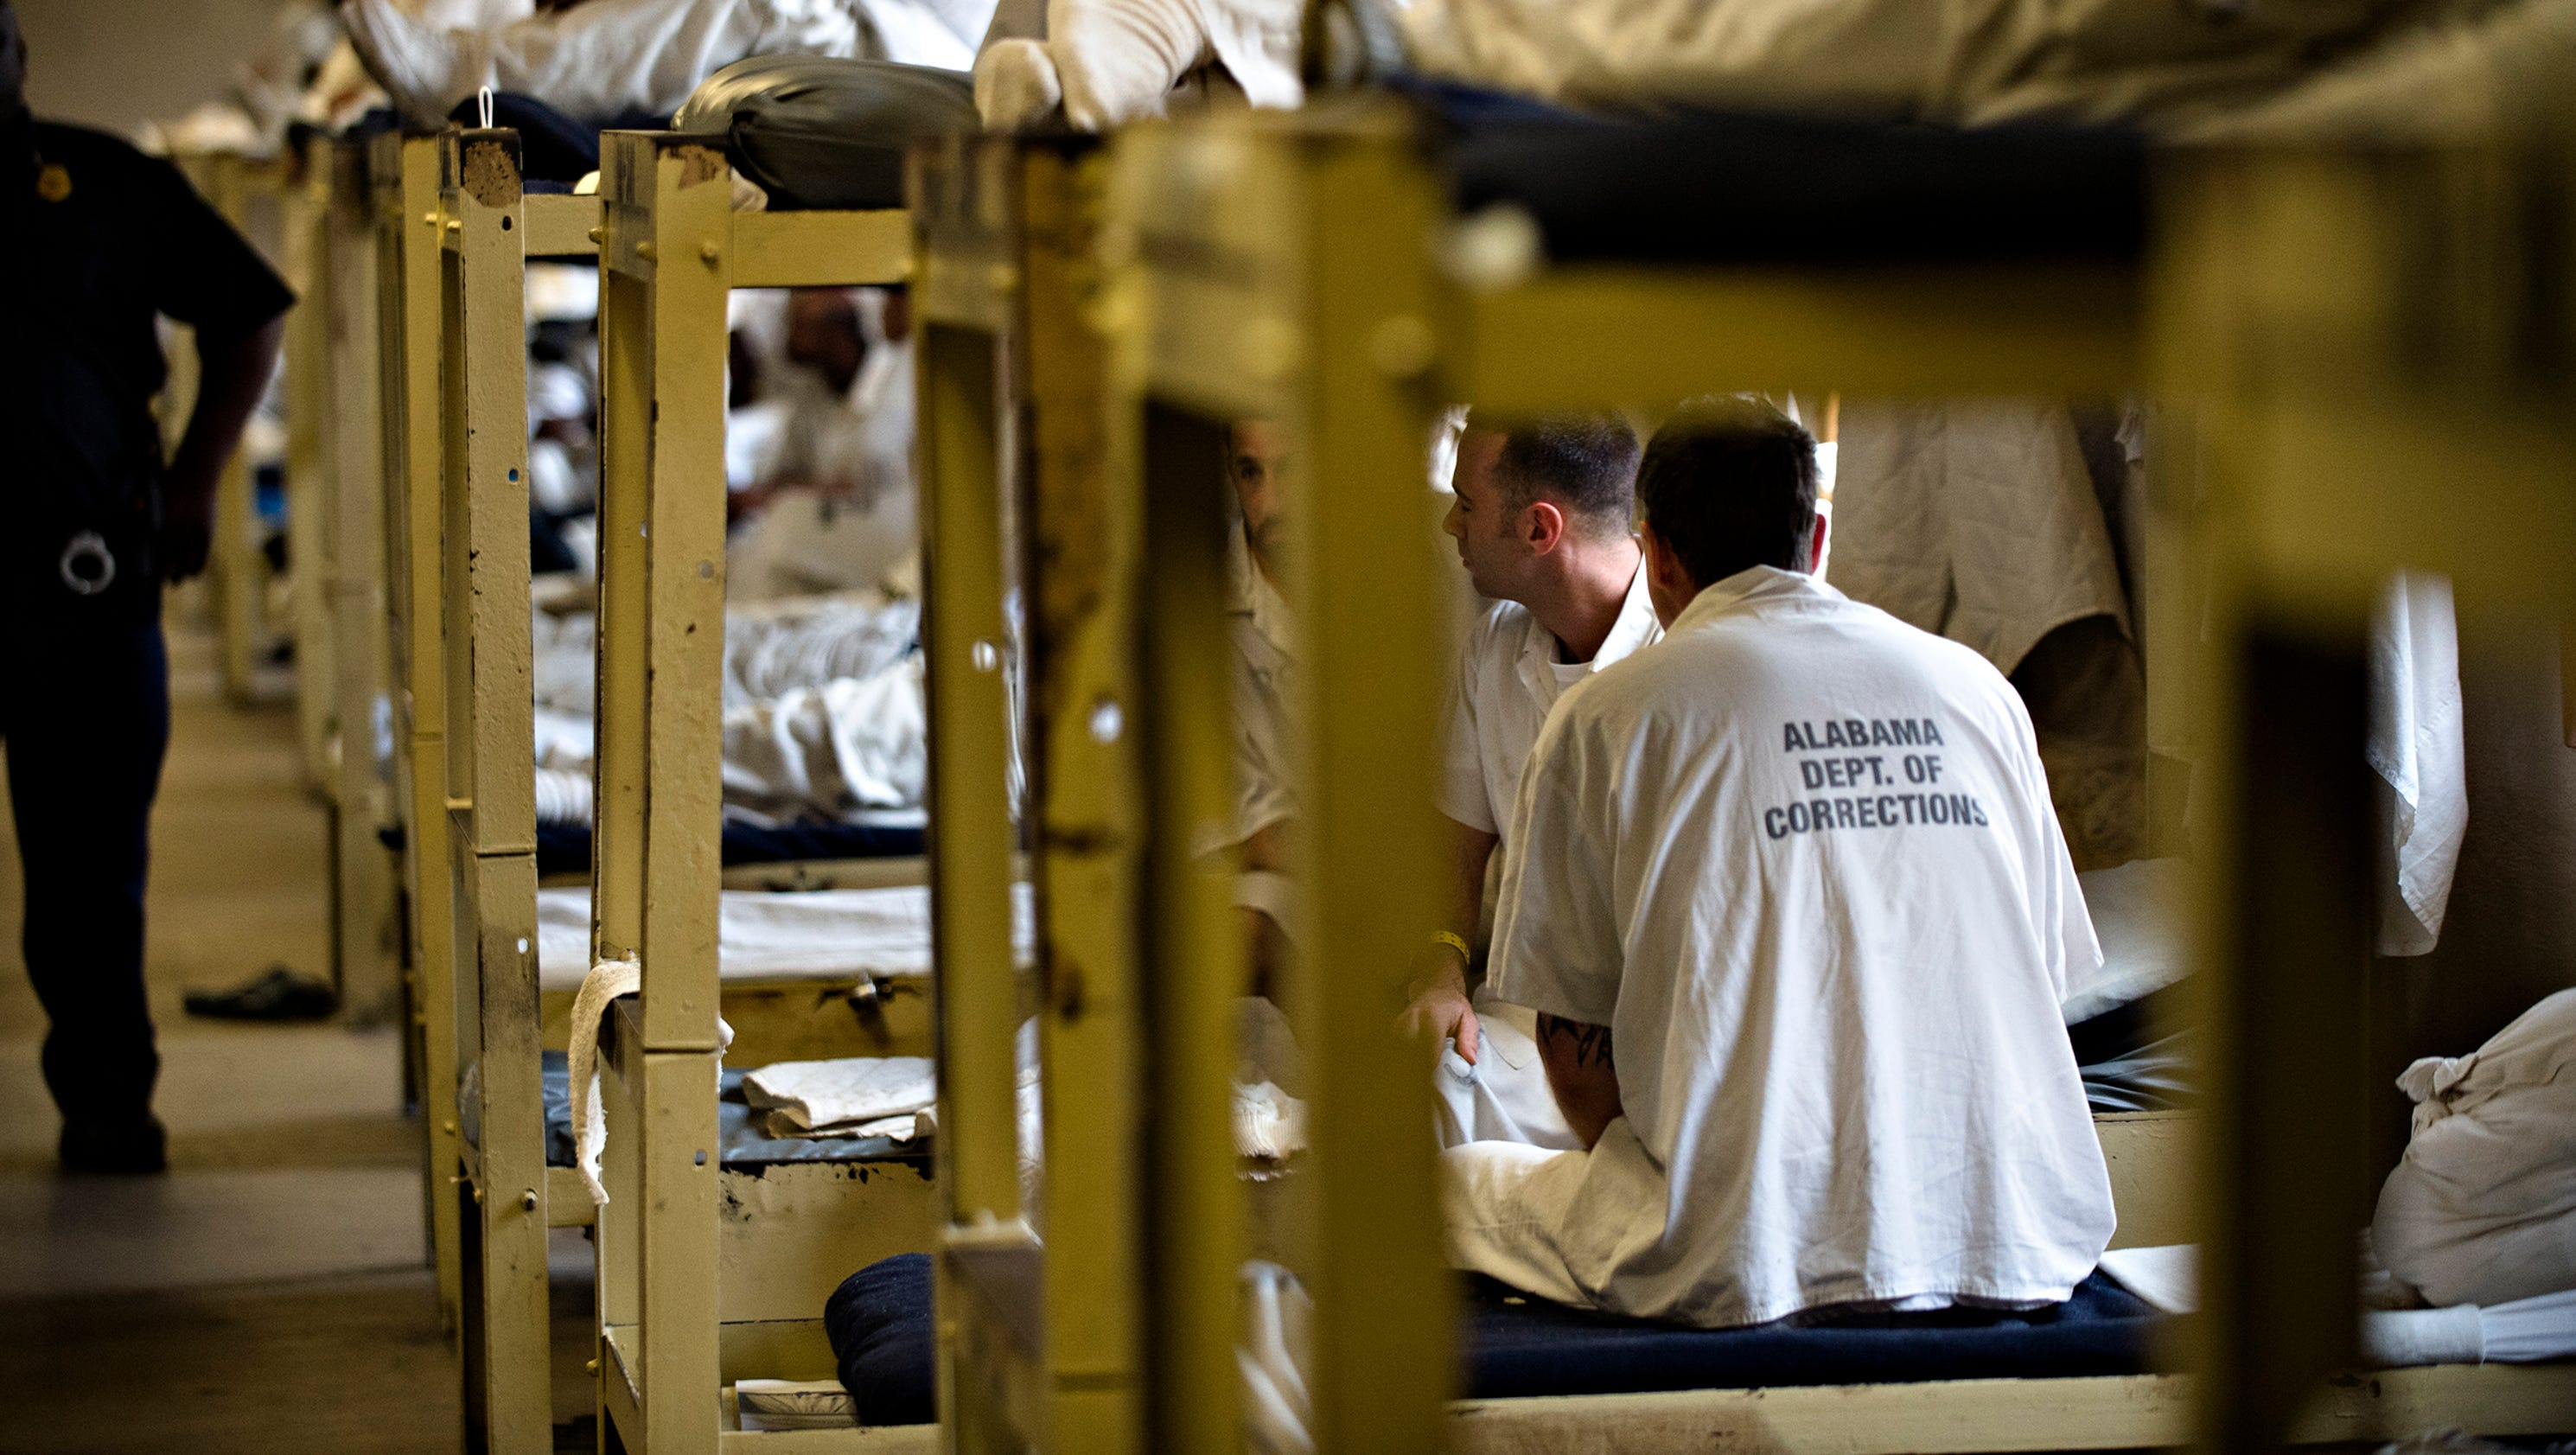 prison health care essay Ethical, social, and public health reasons why prisoners deserve health care and why many us residents view this right of prisoners as unfair virtual mentor is a.